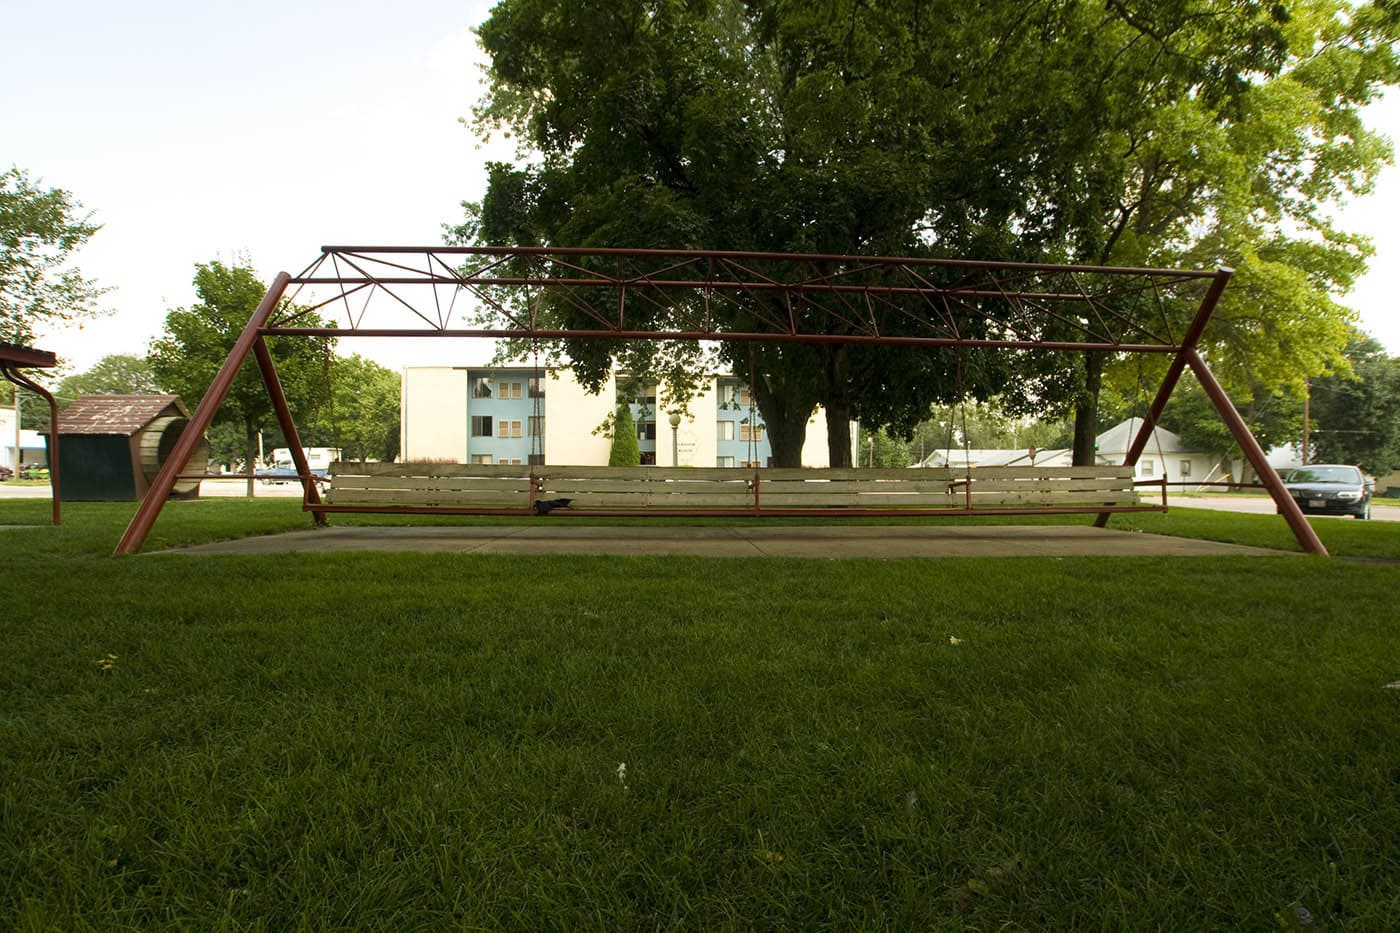 World's Largest Porch Swing in Hebron, Nebraska. Labor Day Chicago to Mount Rushmore Road Trip.